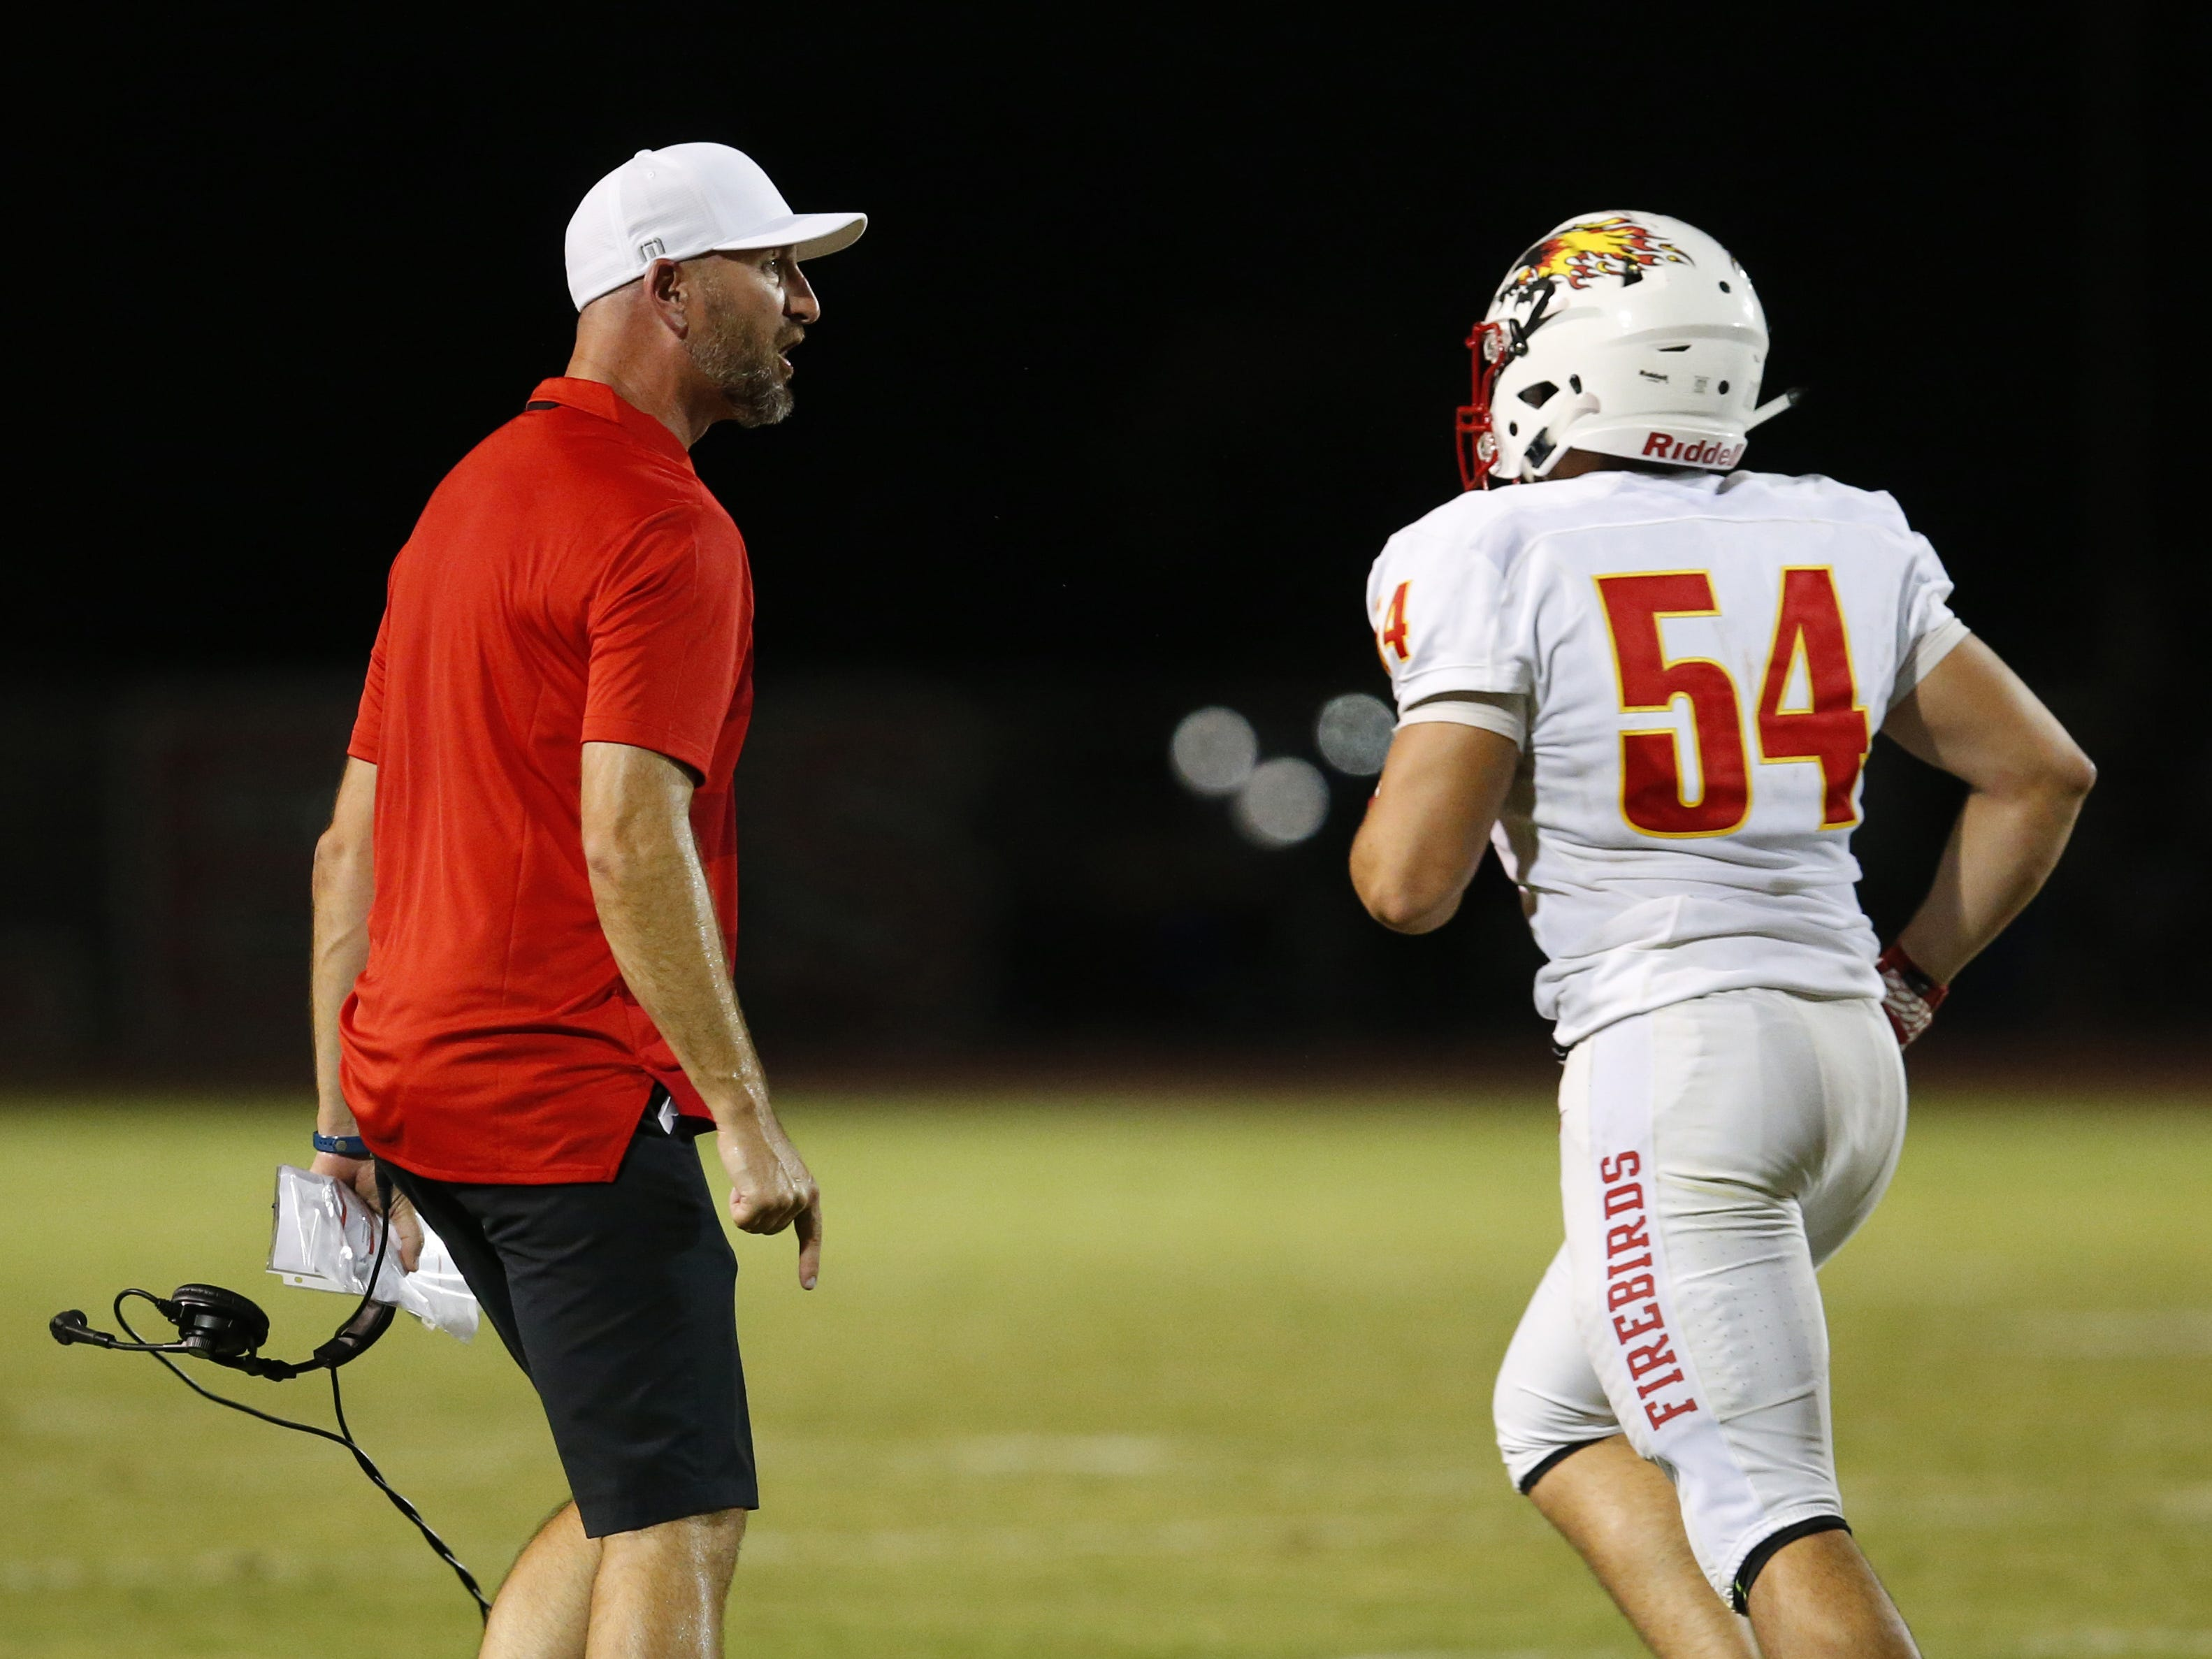 Chaparral head coach Brent Barnes talks to Chaparral Zien Tessler (54) during a high school football game against  Hamilton at Hamilton in Chandler on August 17, 2018. #hsfb